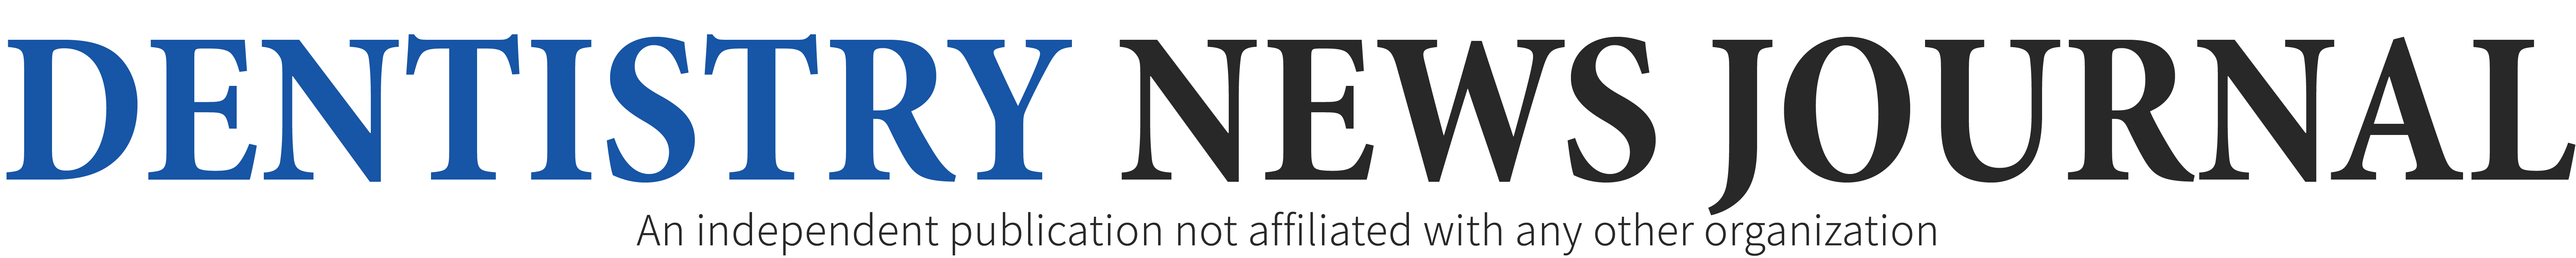 Dentistry News Journal logo